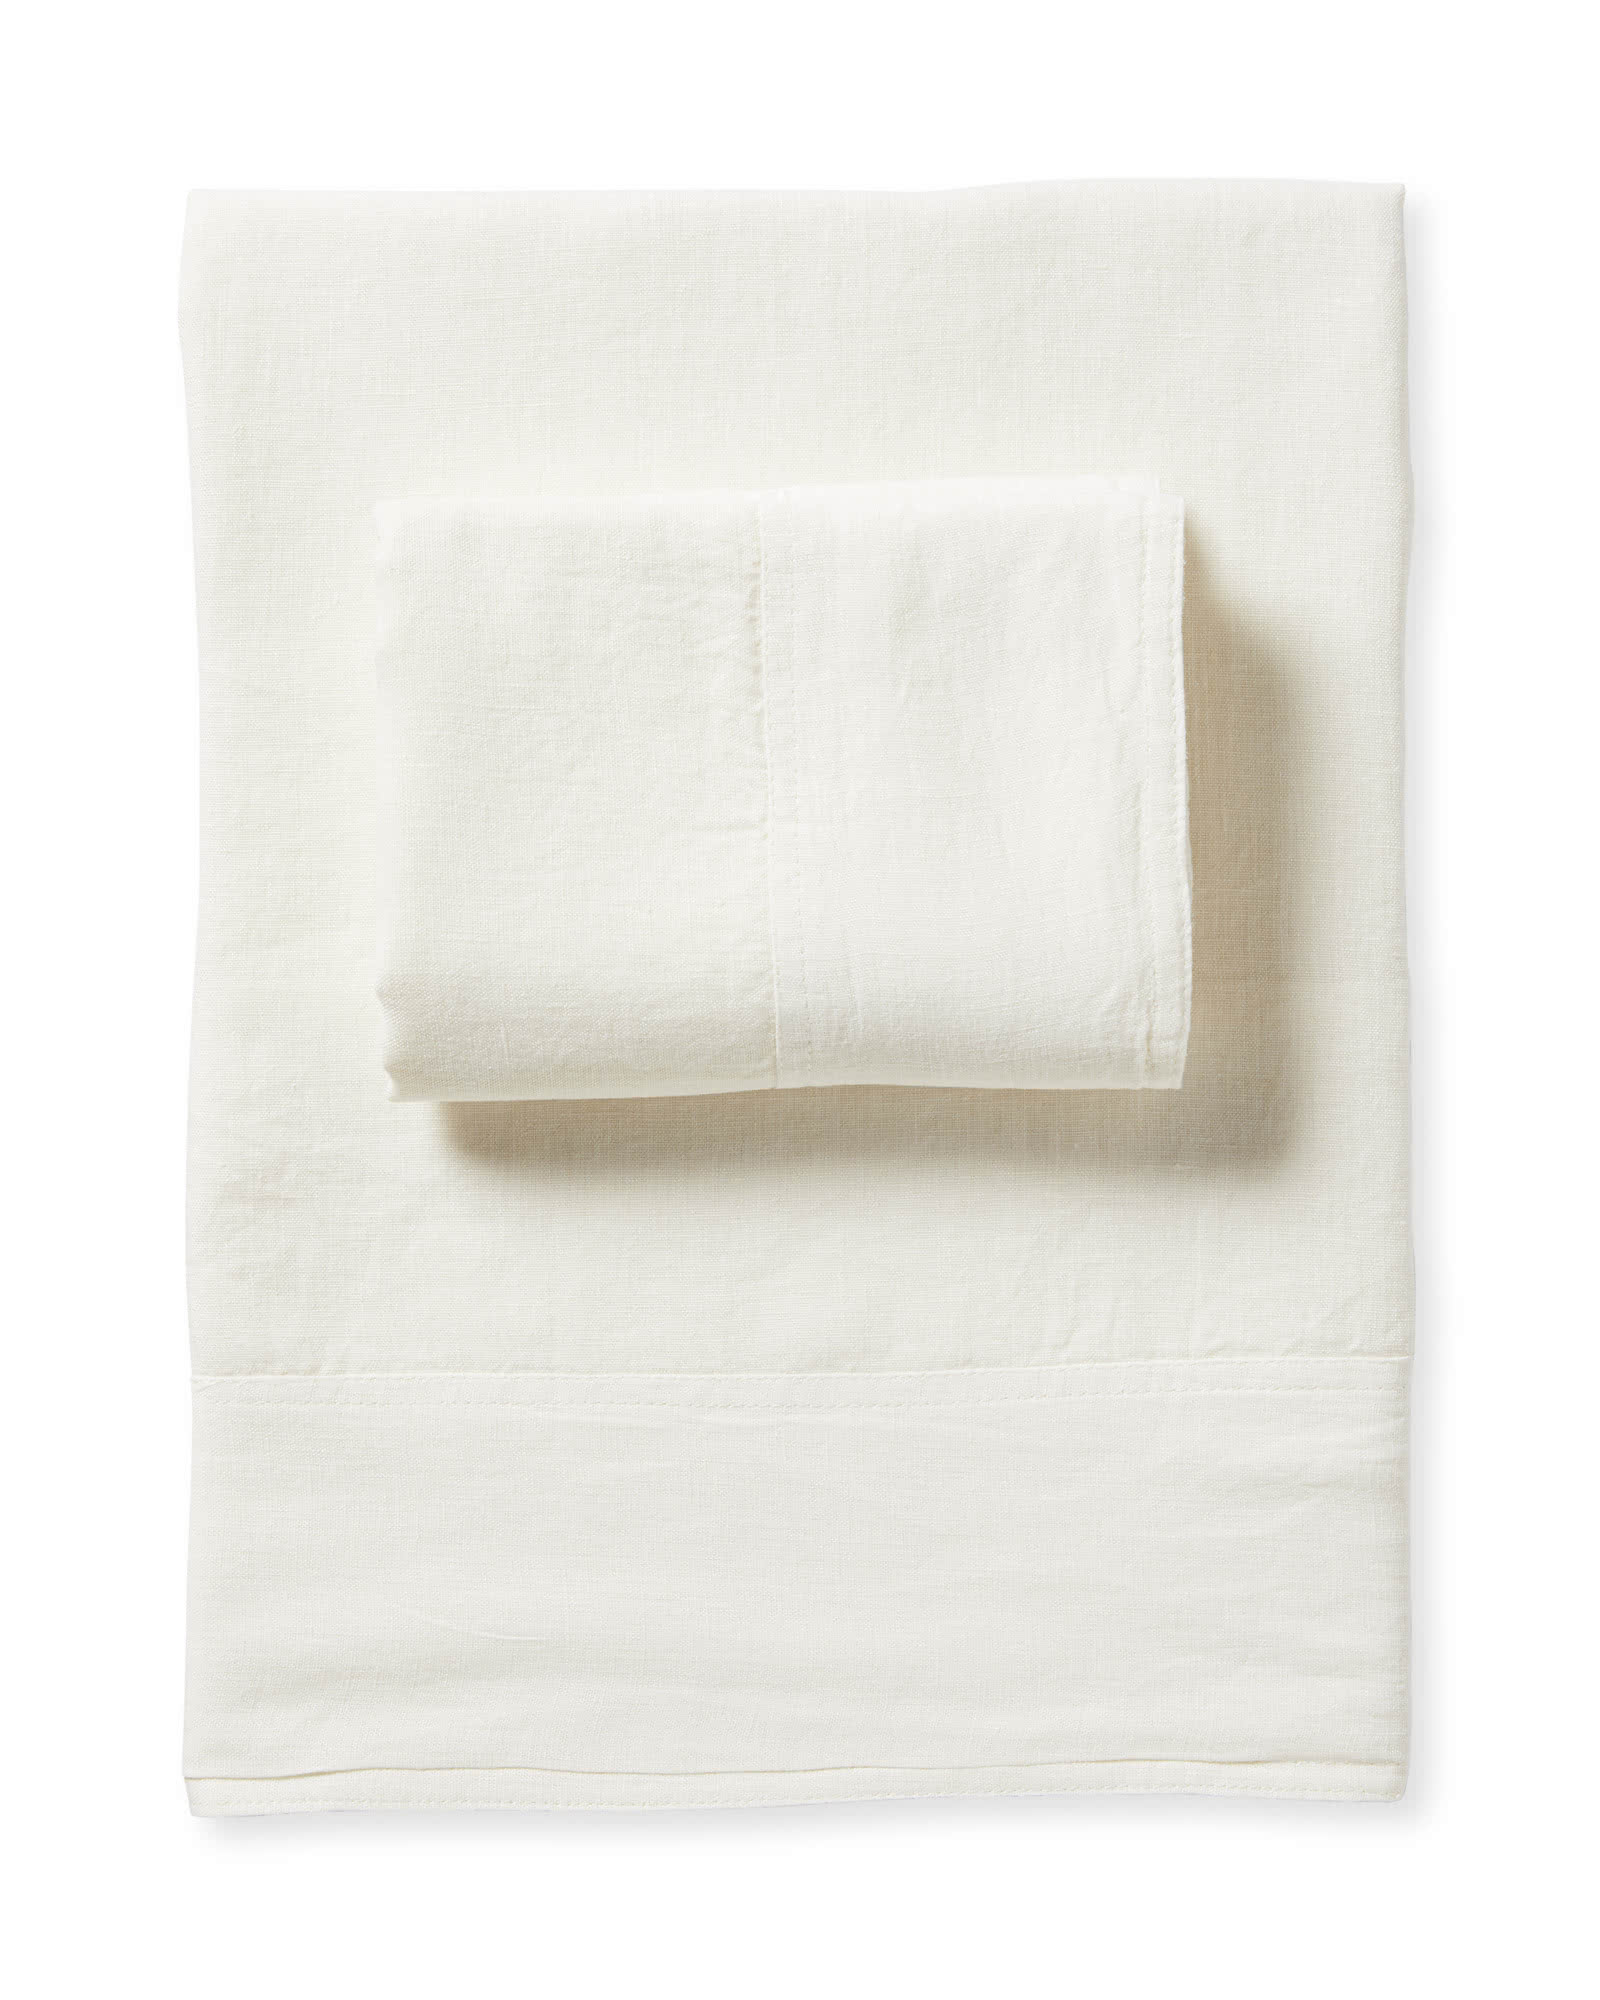 Positano Linen Sheet Set, Ivory